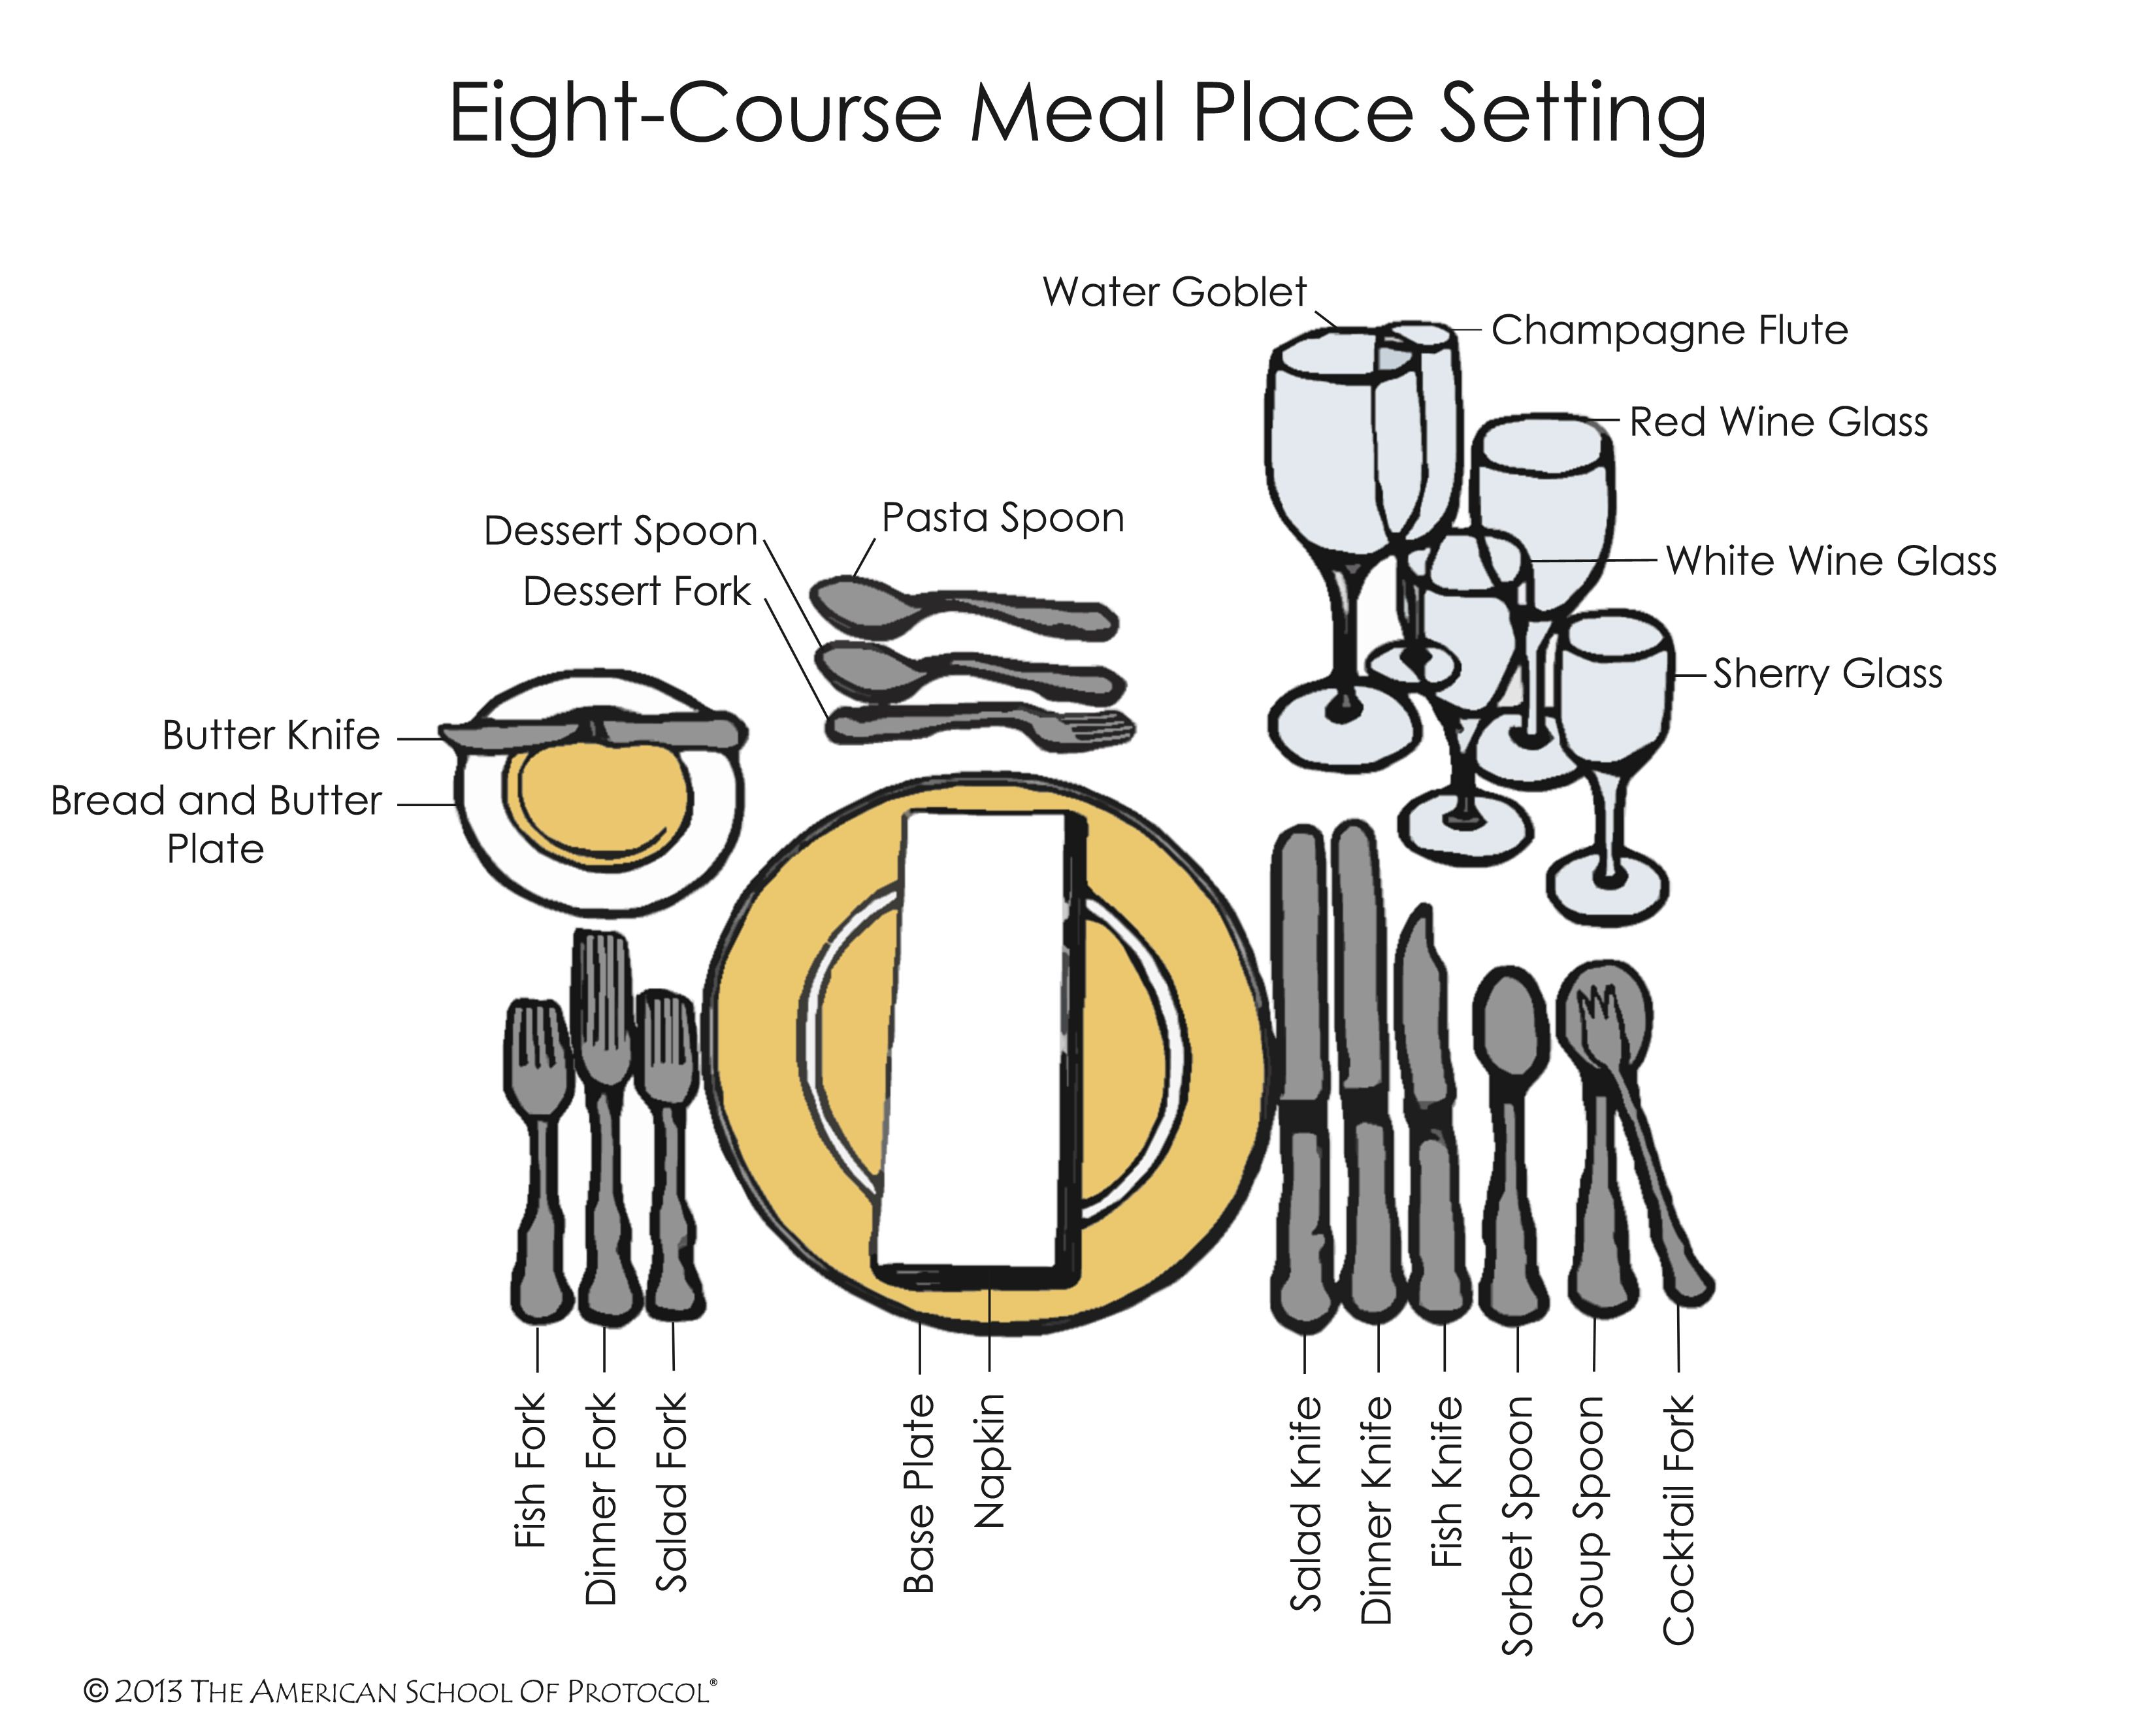 Eight Course Meal Place SettingKnow The Table